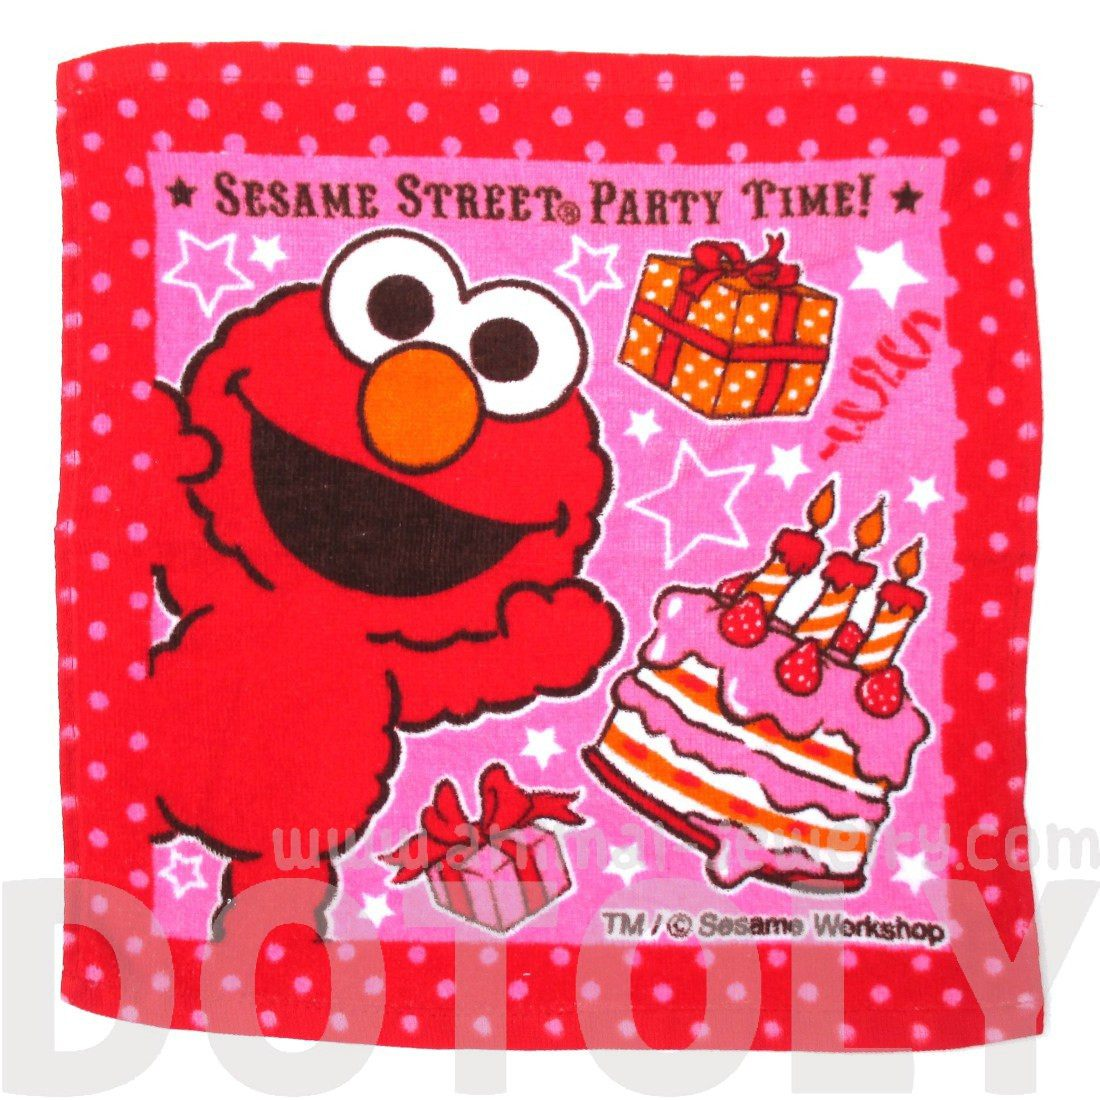 Sesame Street Elmo Red Polka Dot Print Square Face Towel Handkerchief